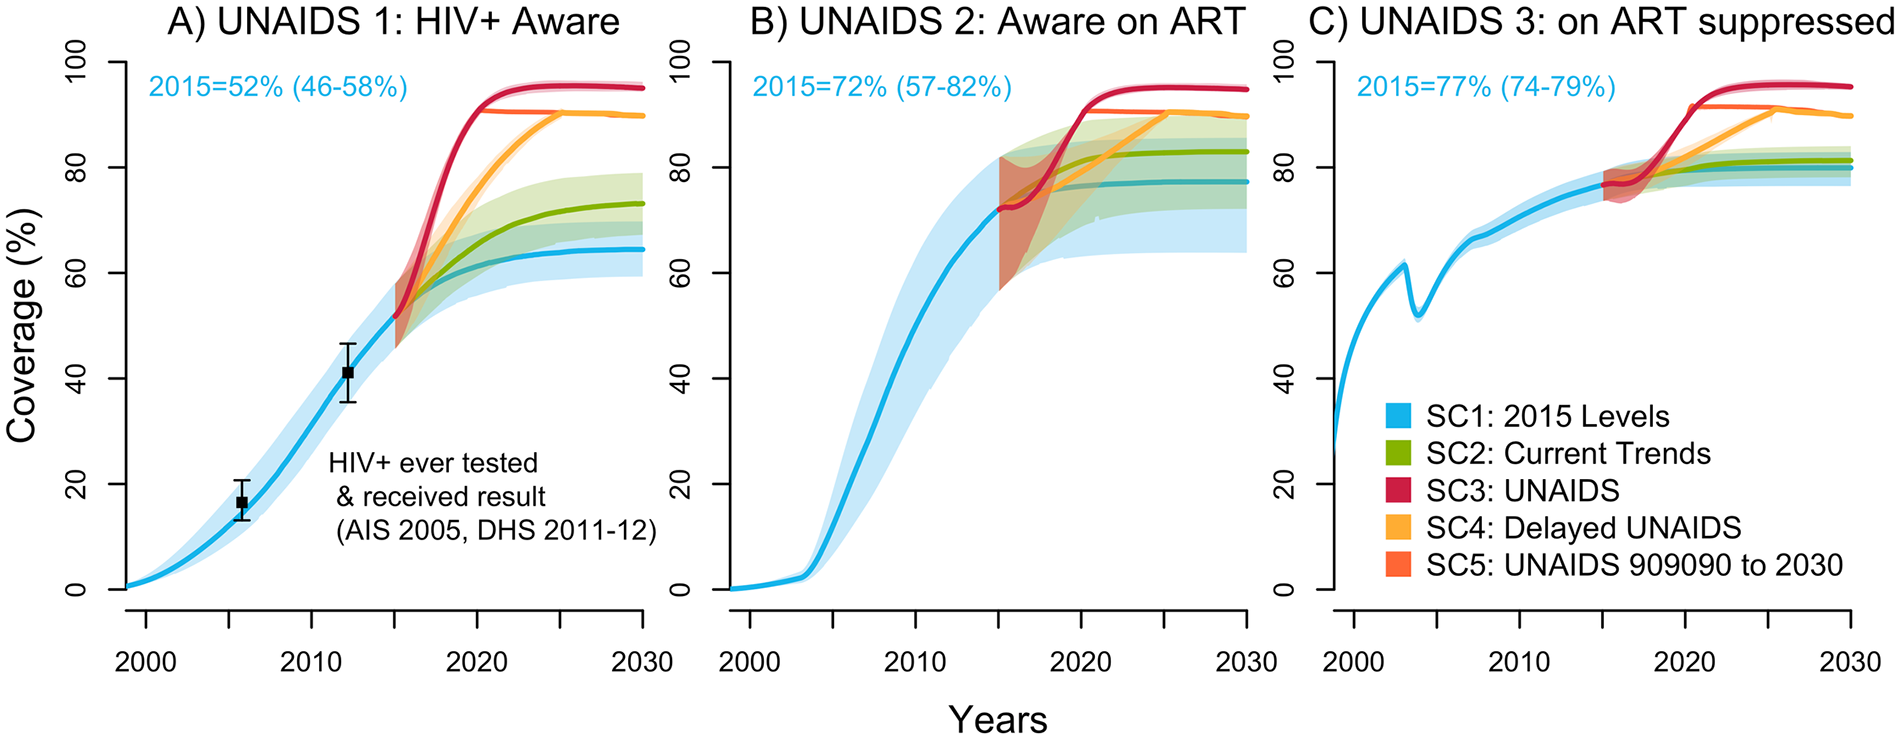 UNAIDS indicators under selected intervention scenarios among the population aged 15–59 years in Côte d'Ivoire (median with 95% credible intervals).